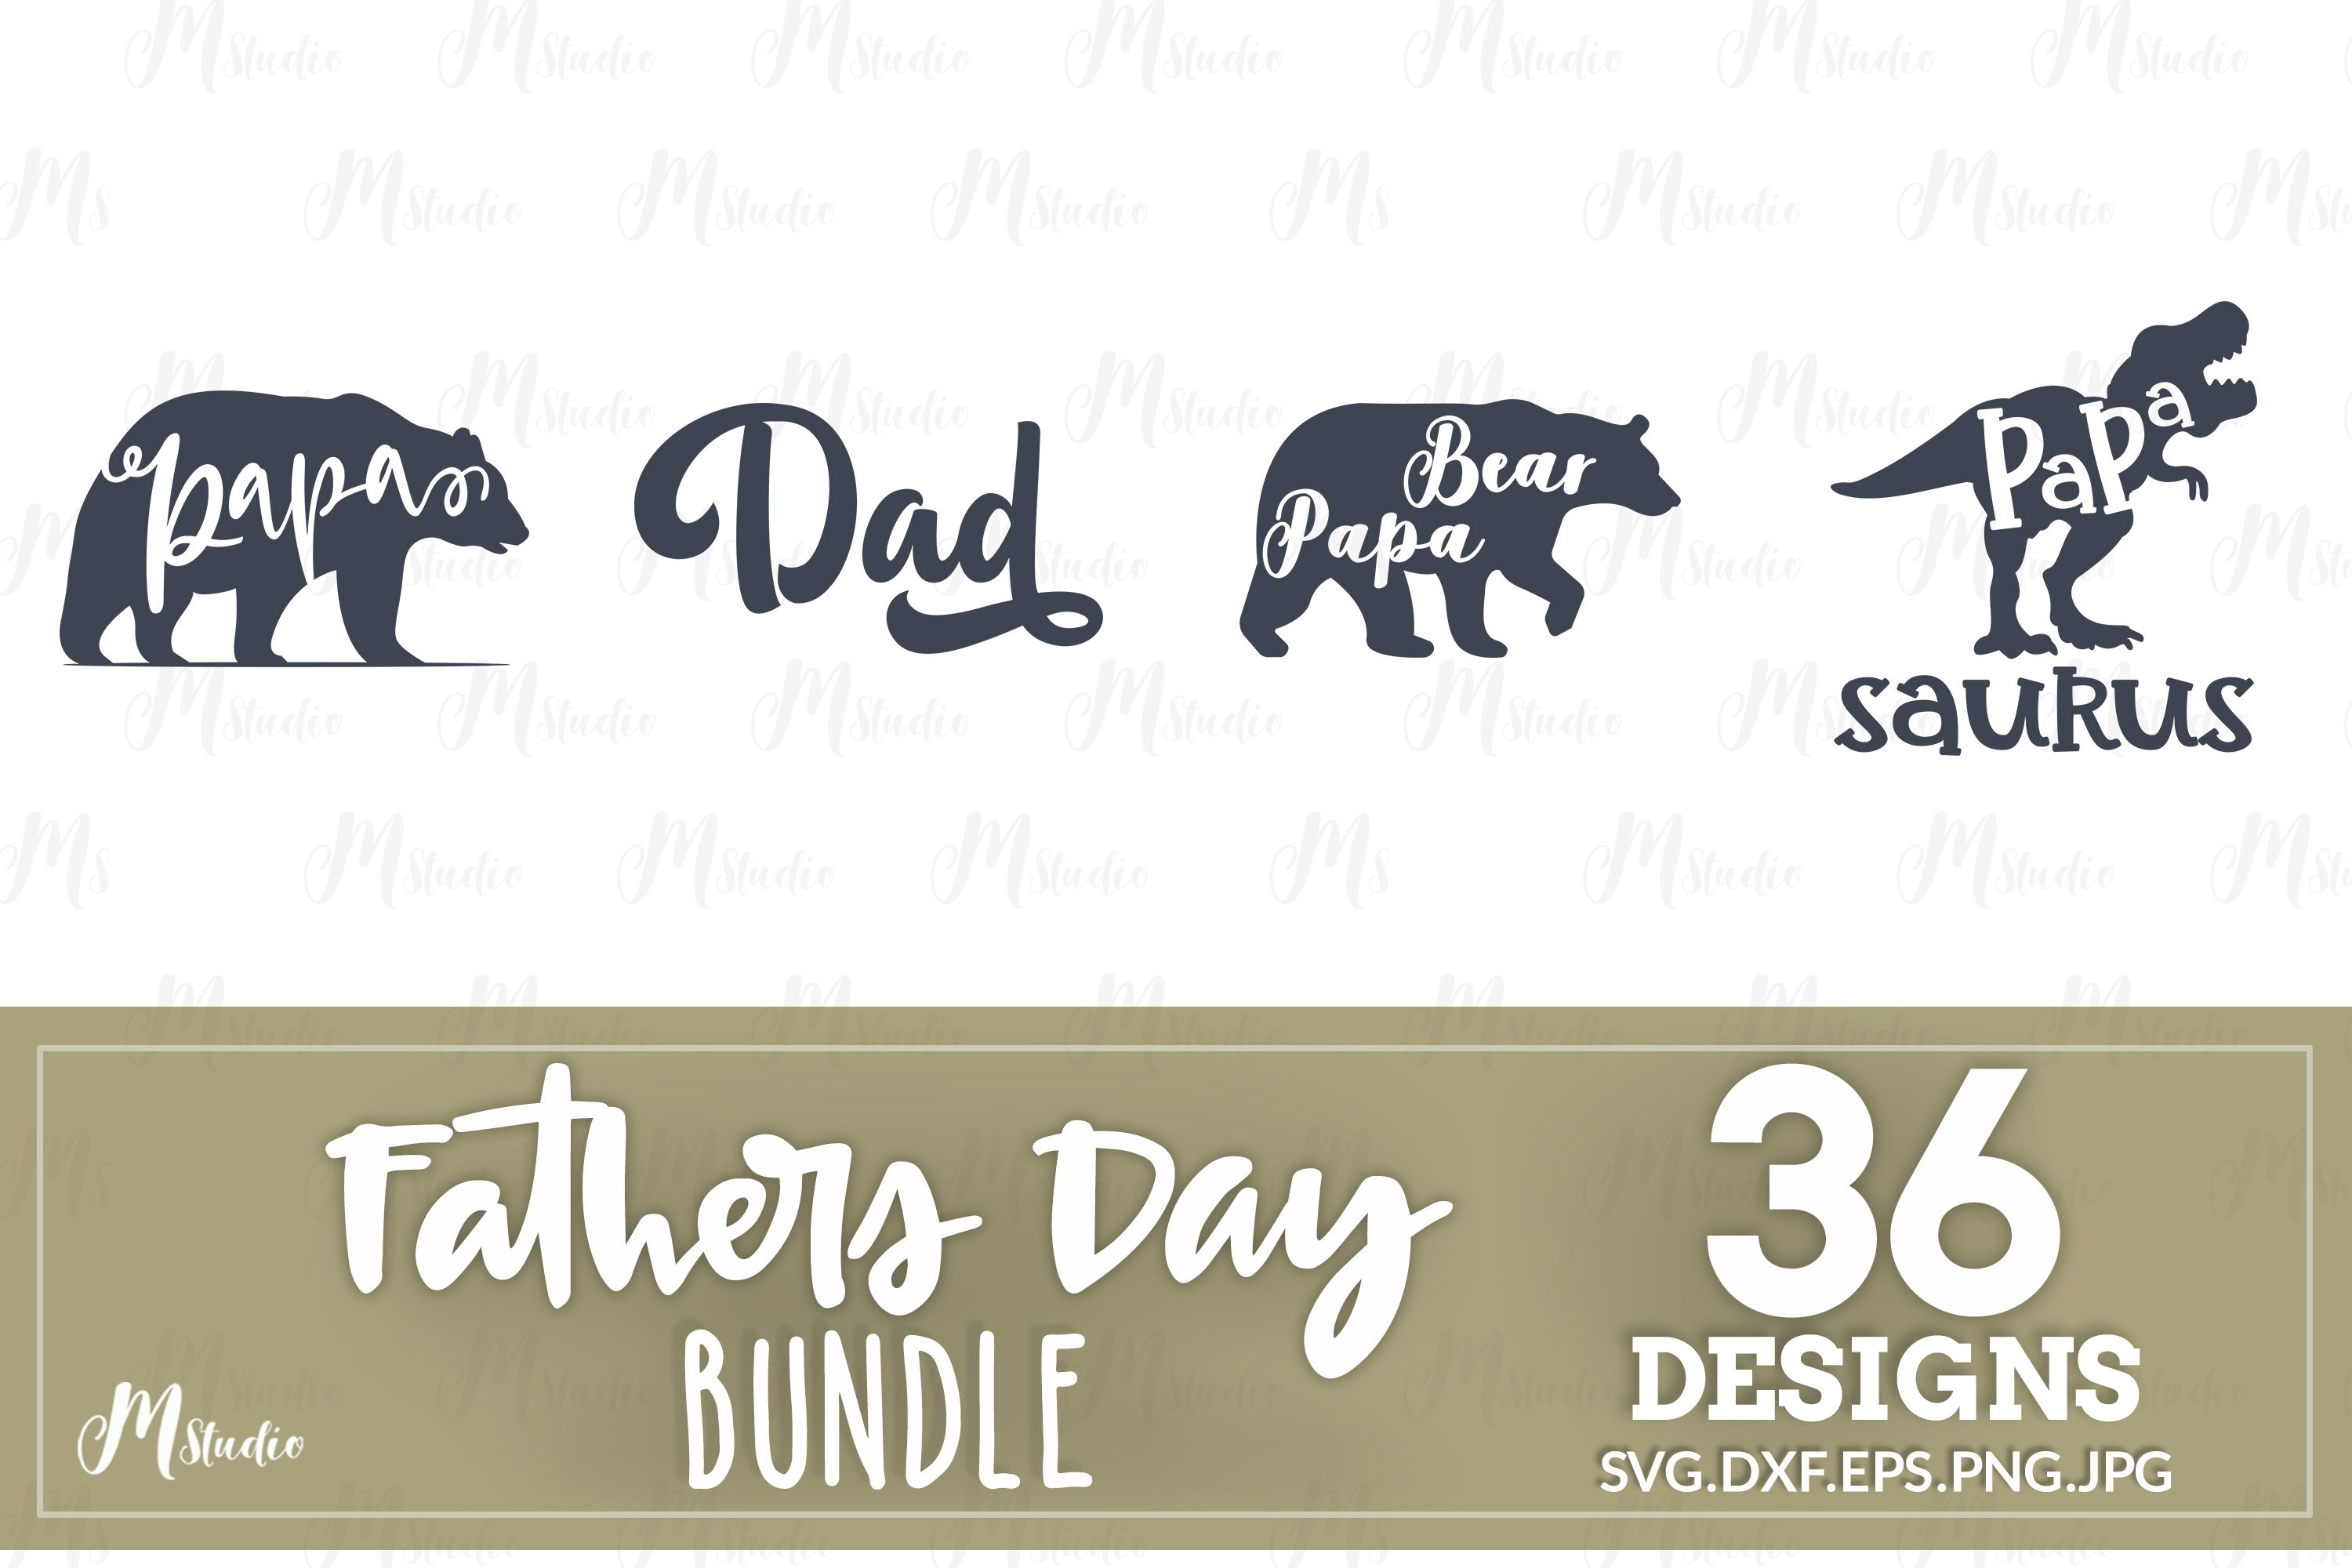 Father's Day SVG Bundle example image 5